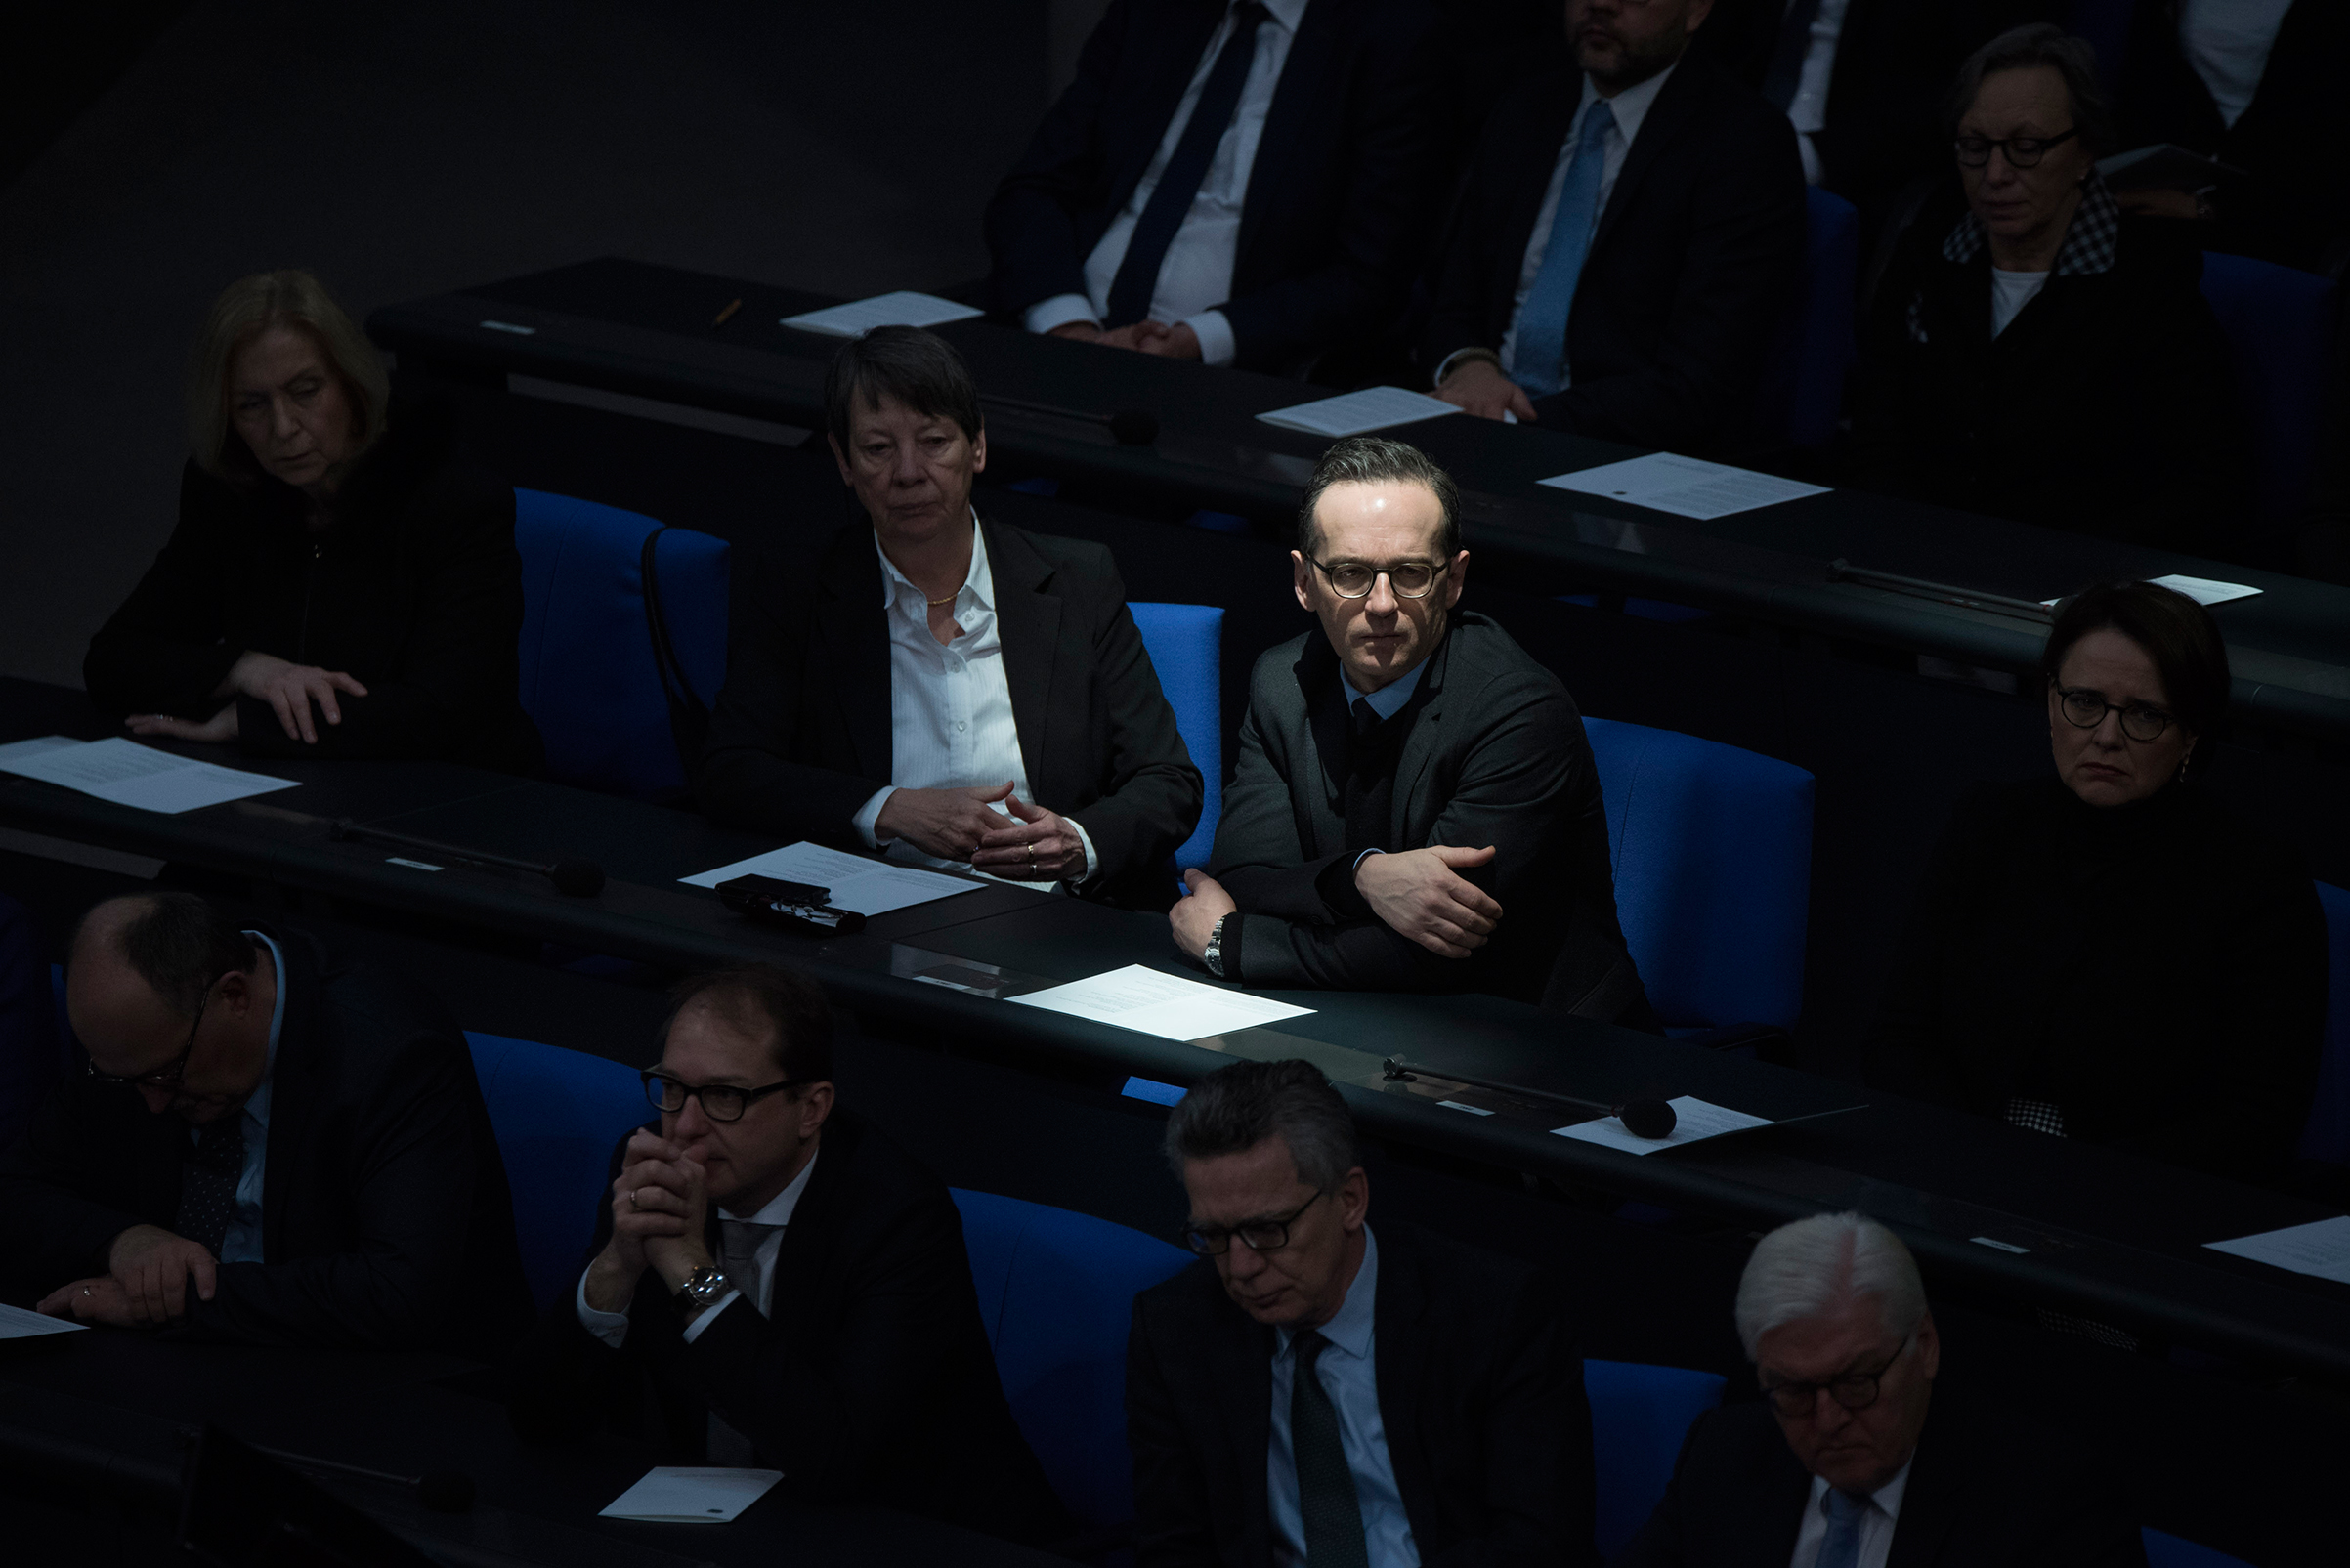 Heiko Maas, Germany's Federal Minister of Justice, during a meeting in Berlin on Jan. 27.